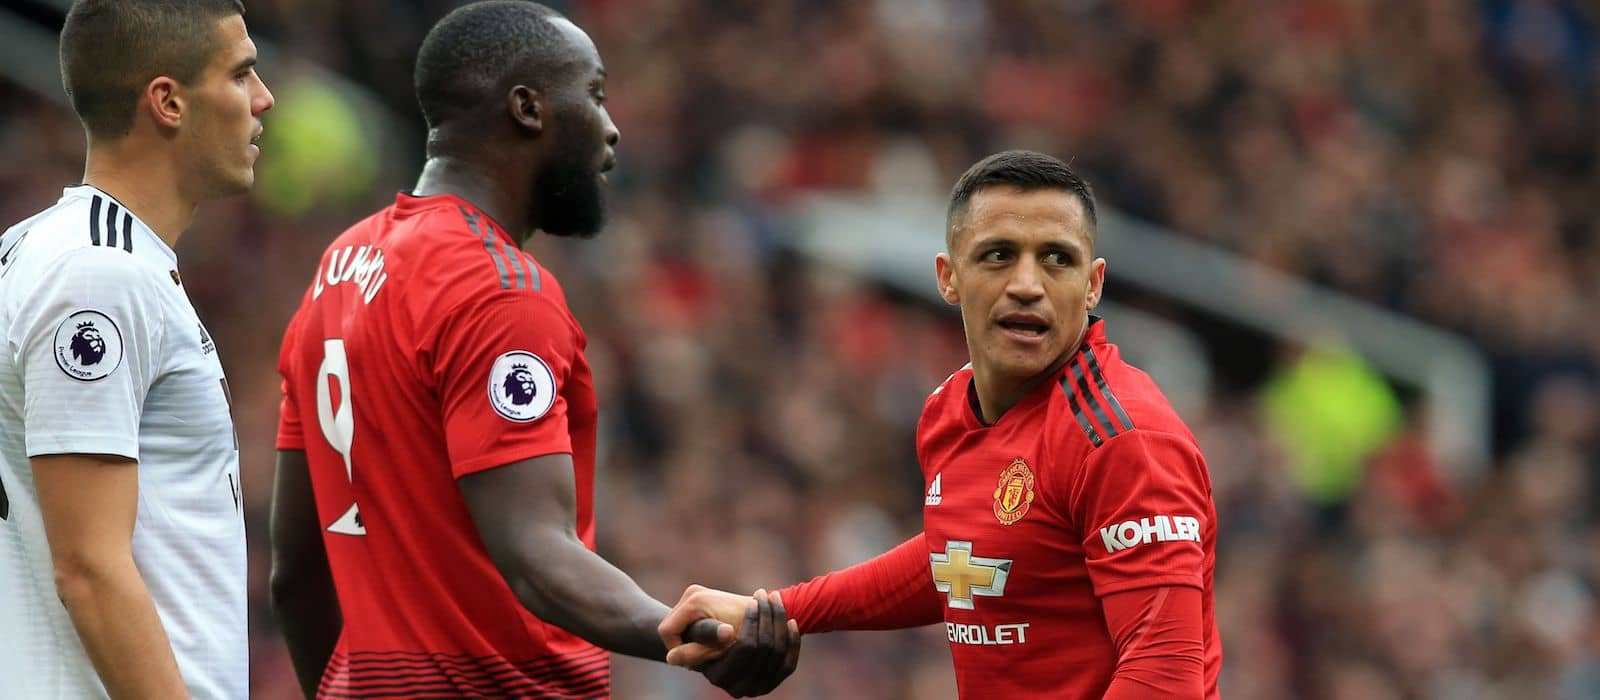 Stats: Signs point to worrying trend for Manchester United and Alexis Sanchez